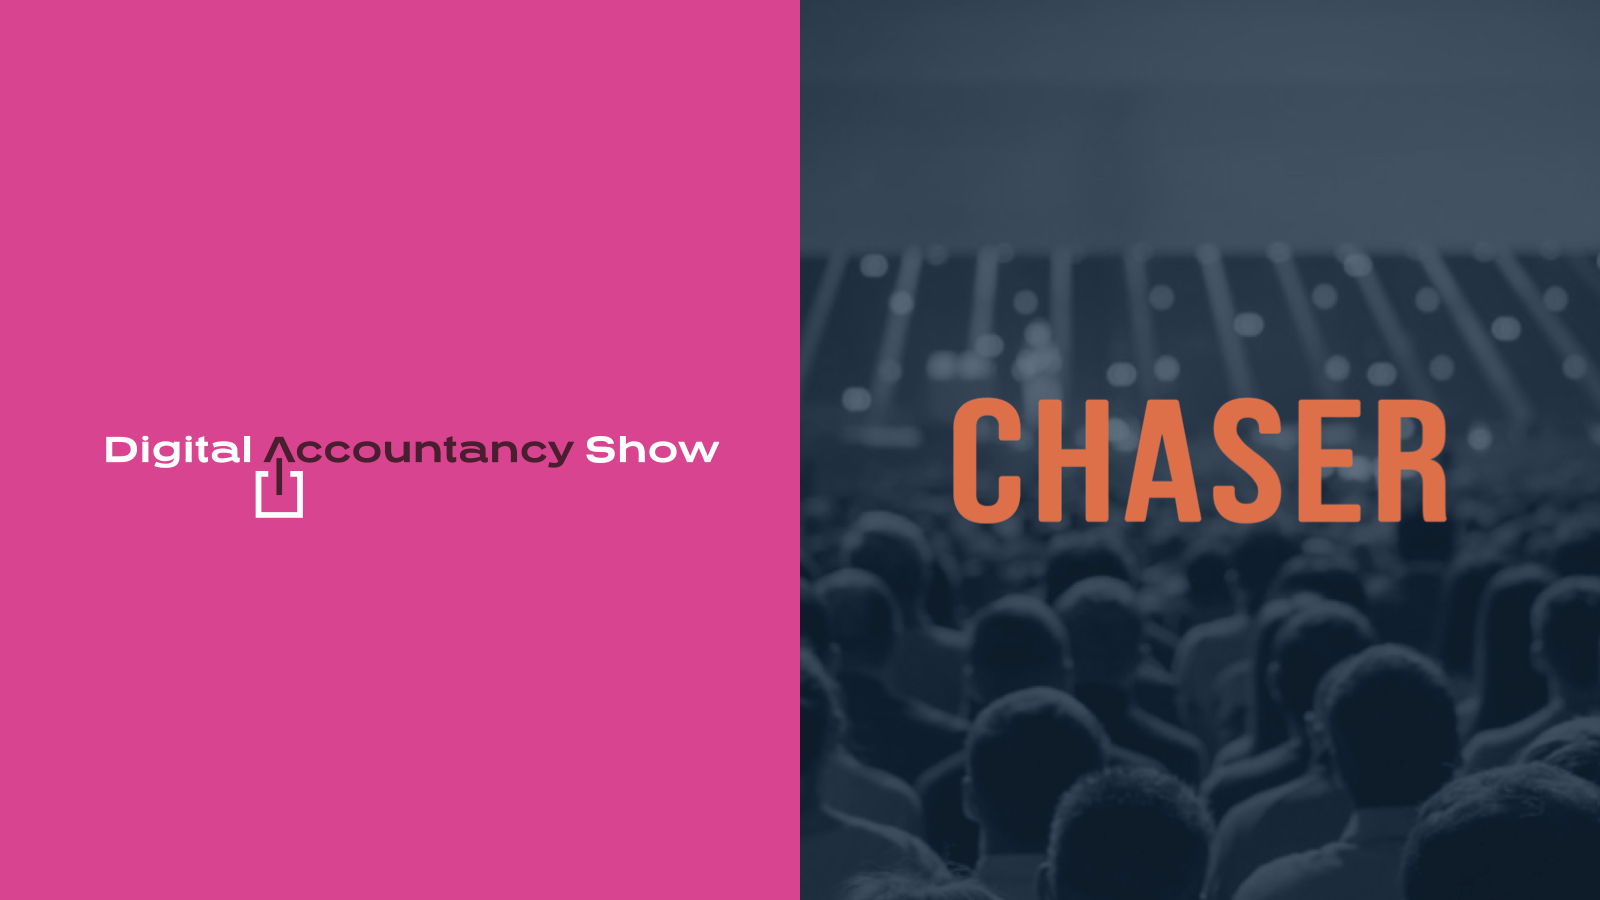 Chaser is attending the Digital Accountancy Show 2021 and hosting 'How to improve your cash flow by £250,000' panel